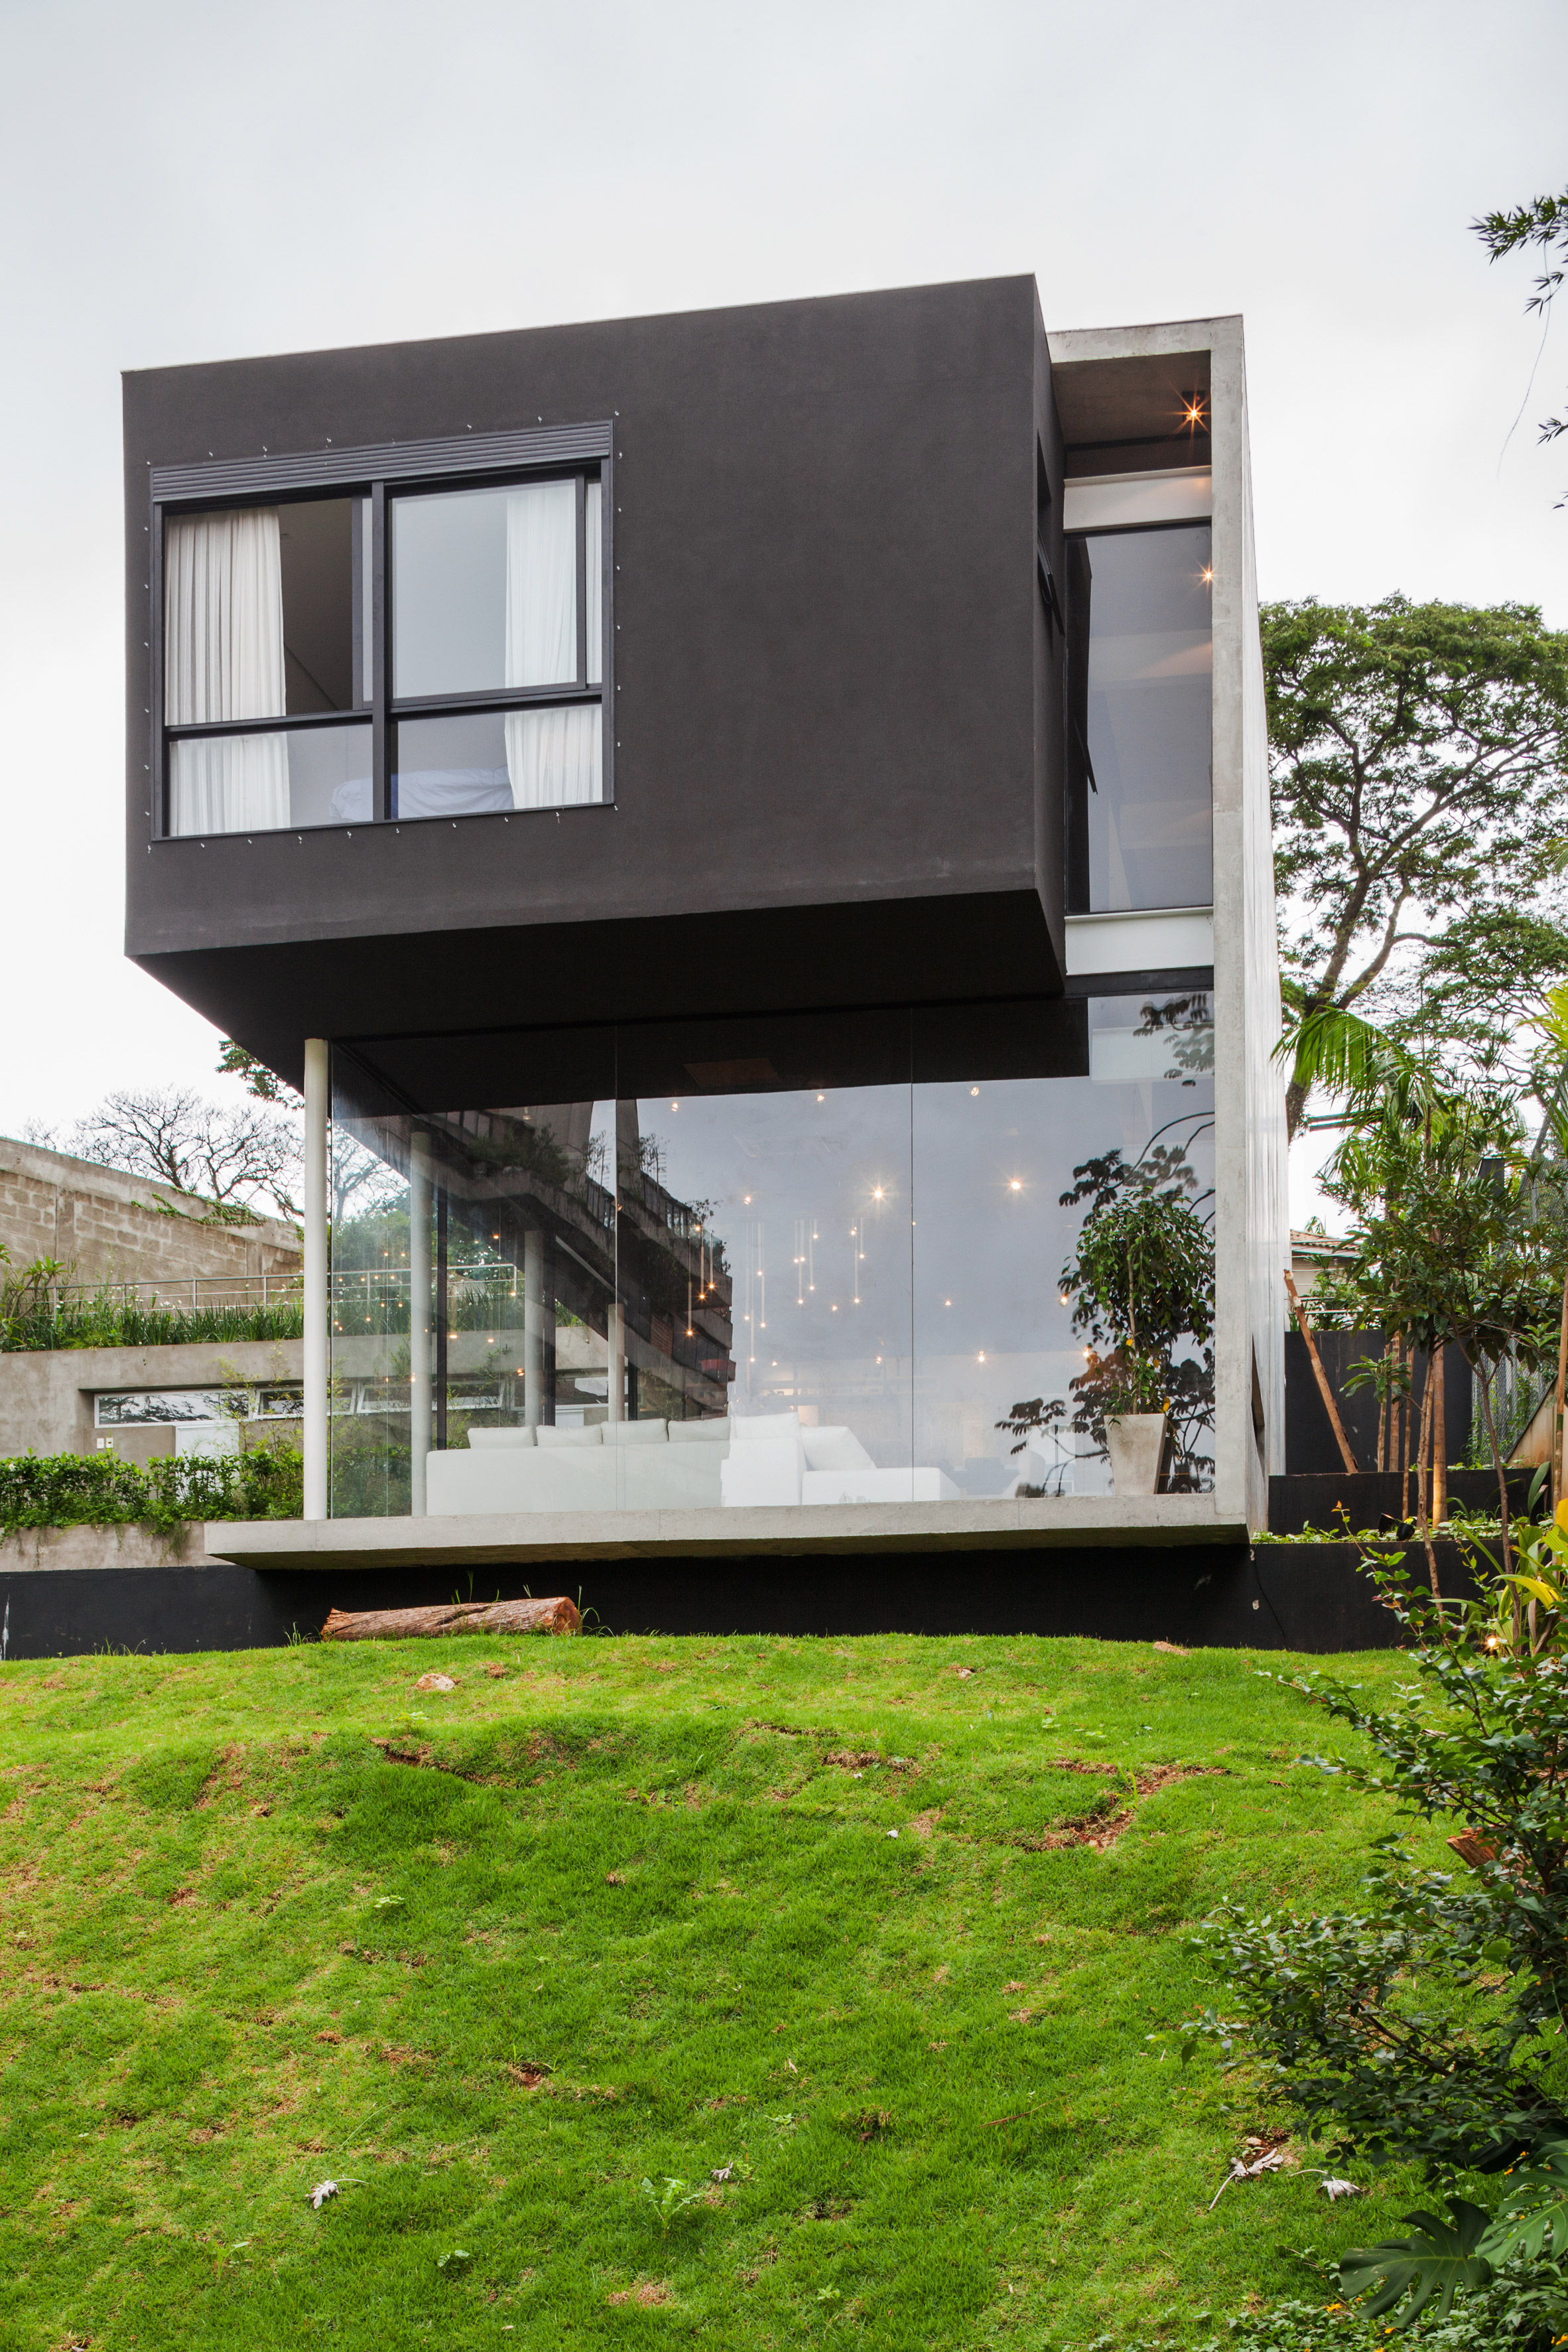 Concrete volume appears to rest on glass in Brazilianhouse byFGMF Arquitetos